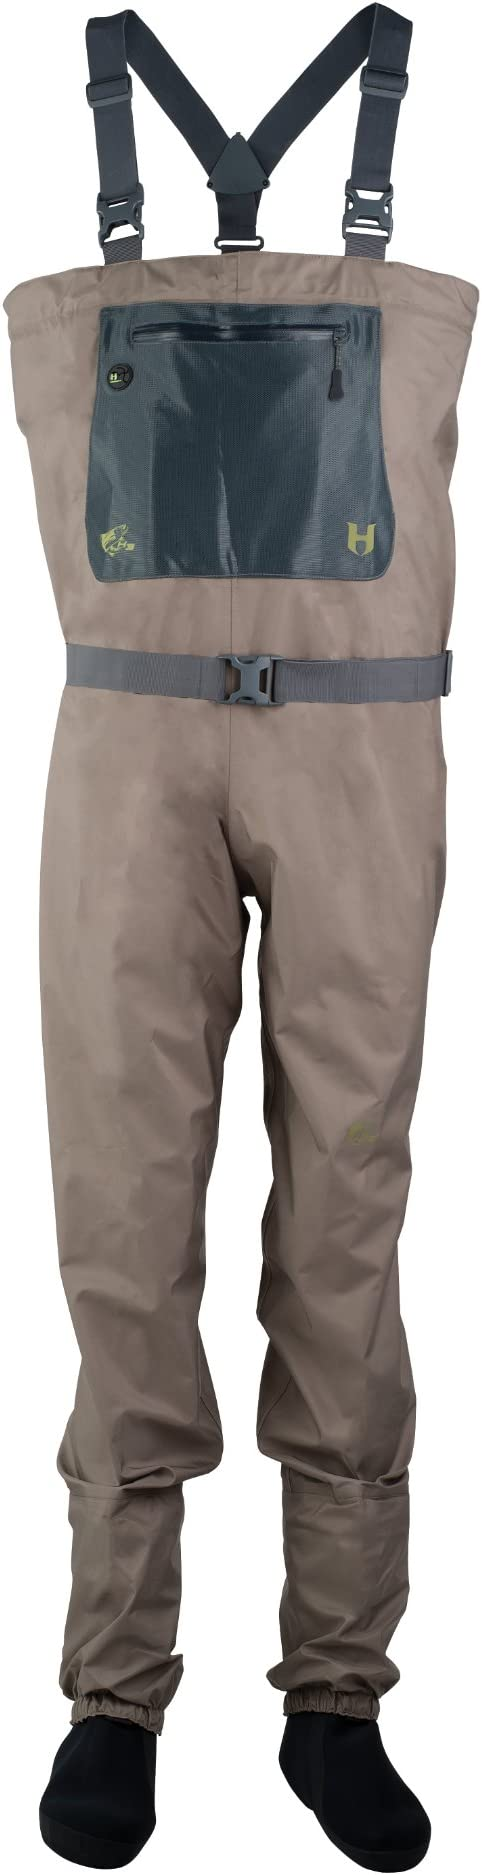 Hodgman H3 Stocking Foot Chest Waders